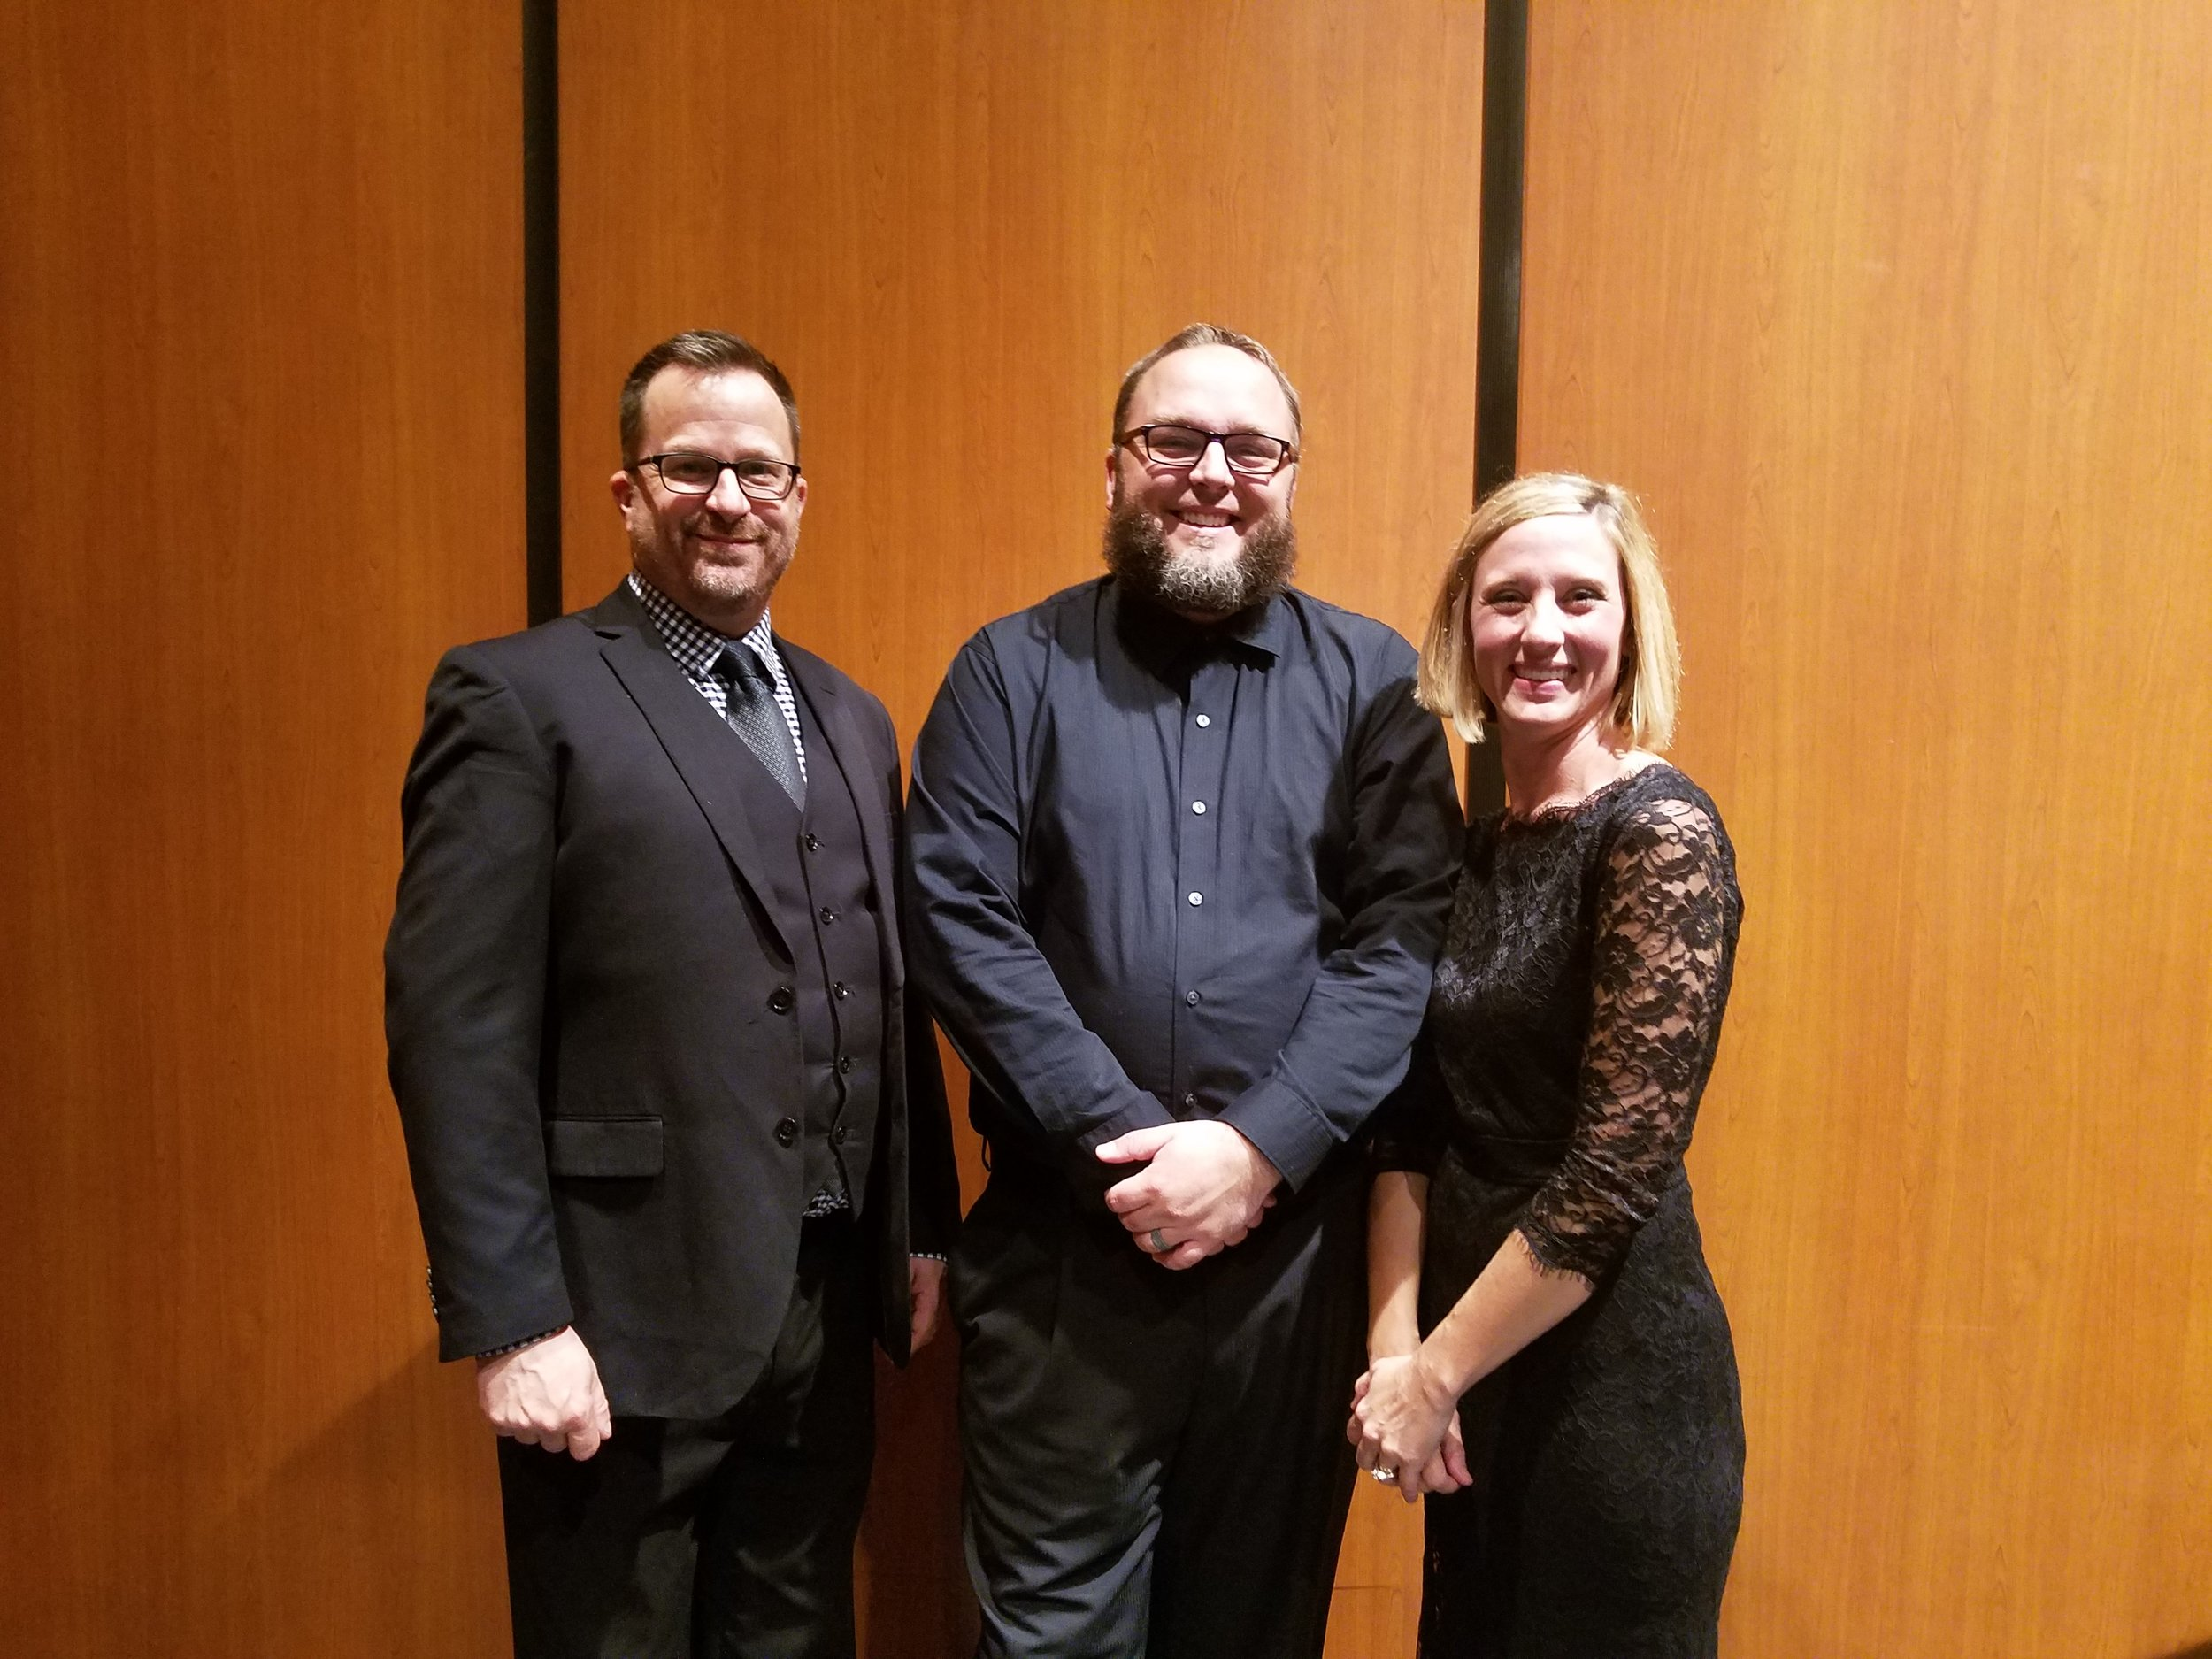 HSE Staff - Audrey Torres, Director of Bandsatorres@hse.k12.in.usEd Roush, Associate Director of Bandseroush@hse.k12.in.usJake Coon, Percussion Directorjcoon@hse.k12.in.us